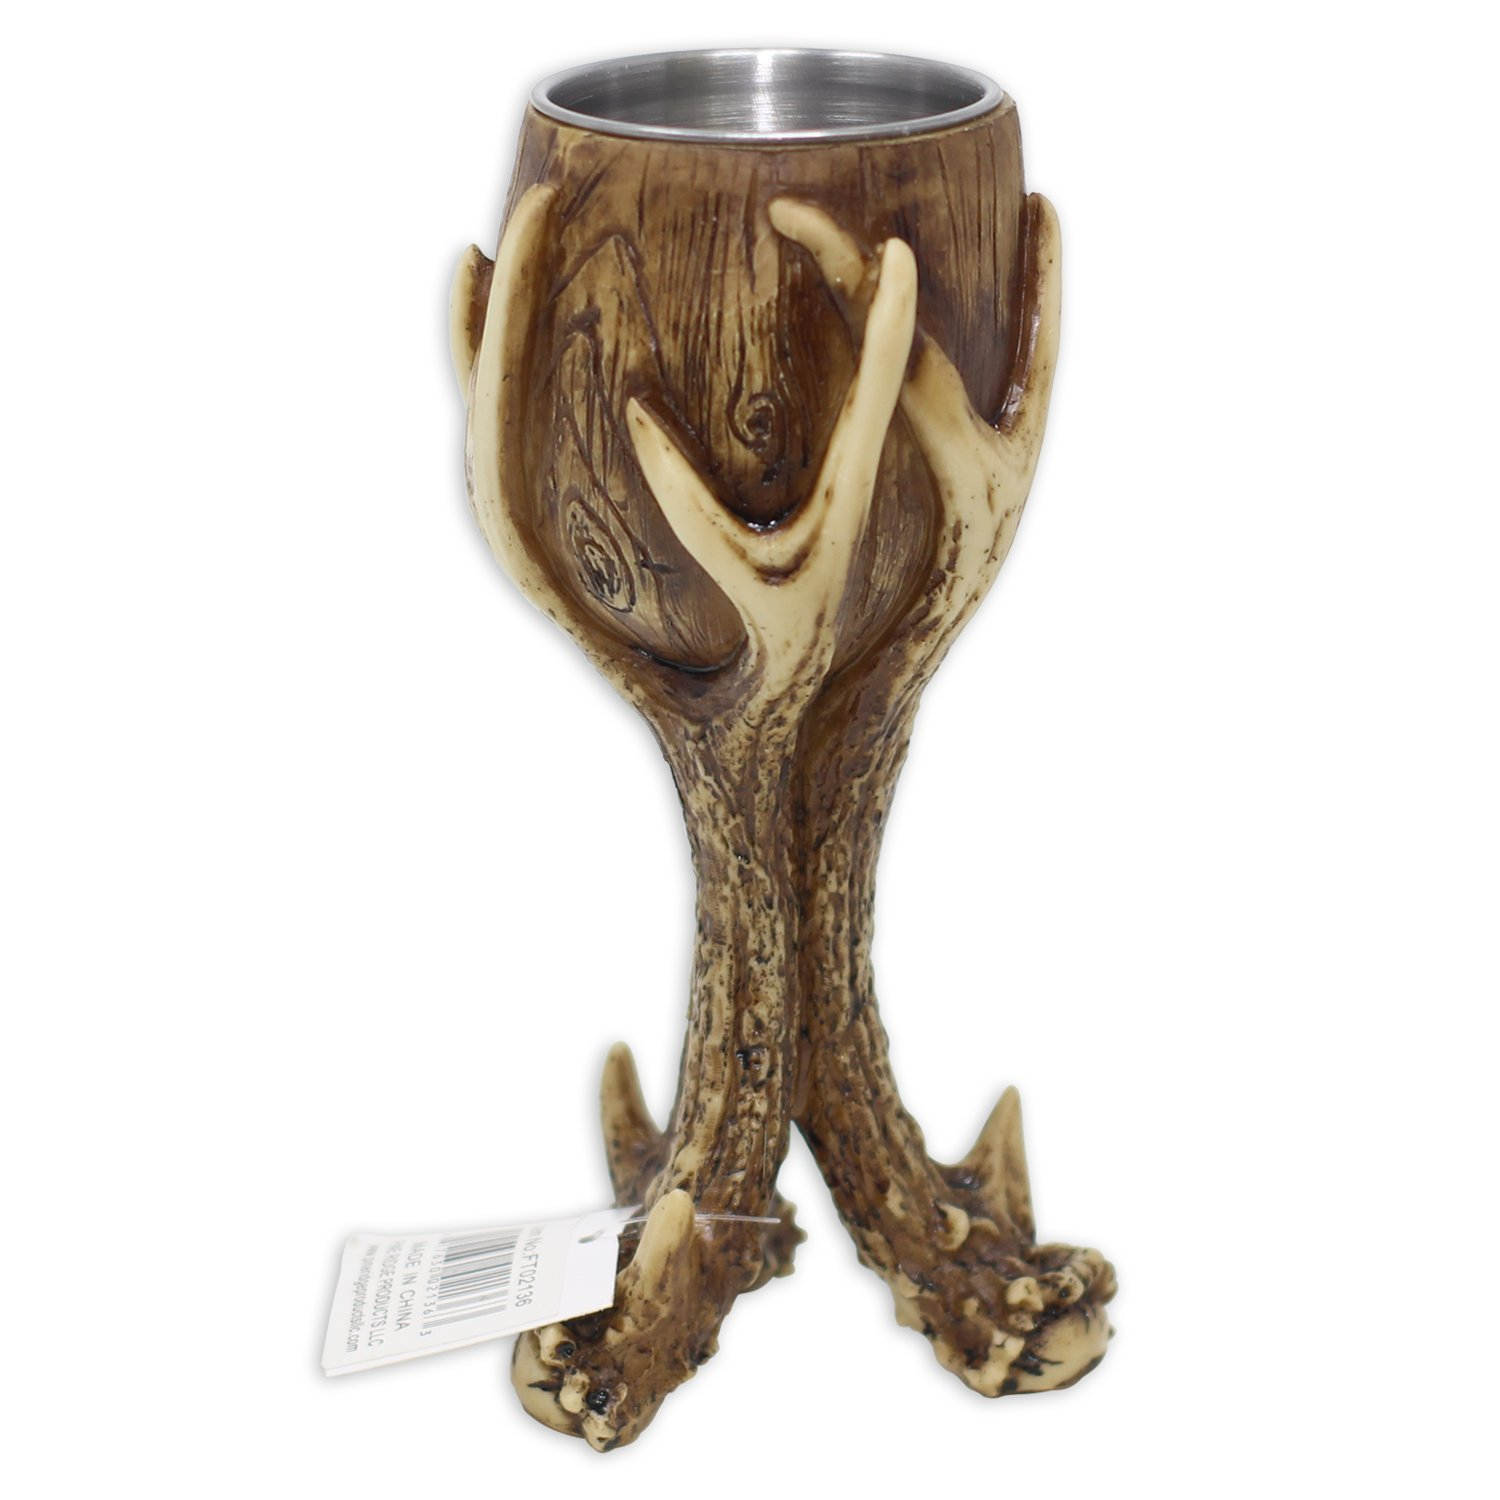 Pine Ridge Wild Deer Antler Stag Red Wine Goblet - Cool Single Pack Unique Drinking Stags Blood Rustic Wine Glass